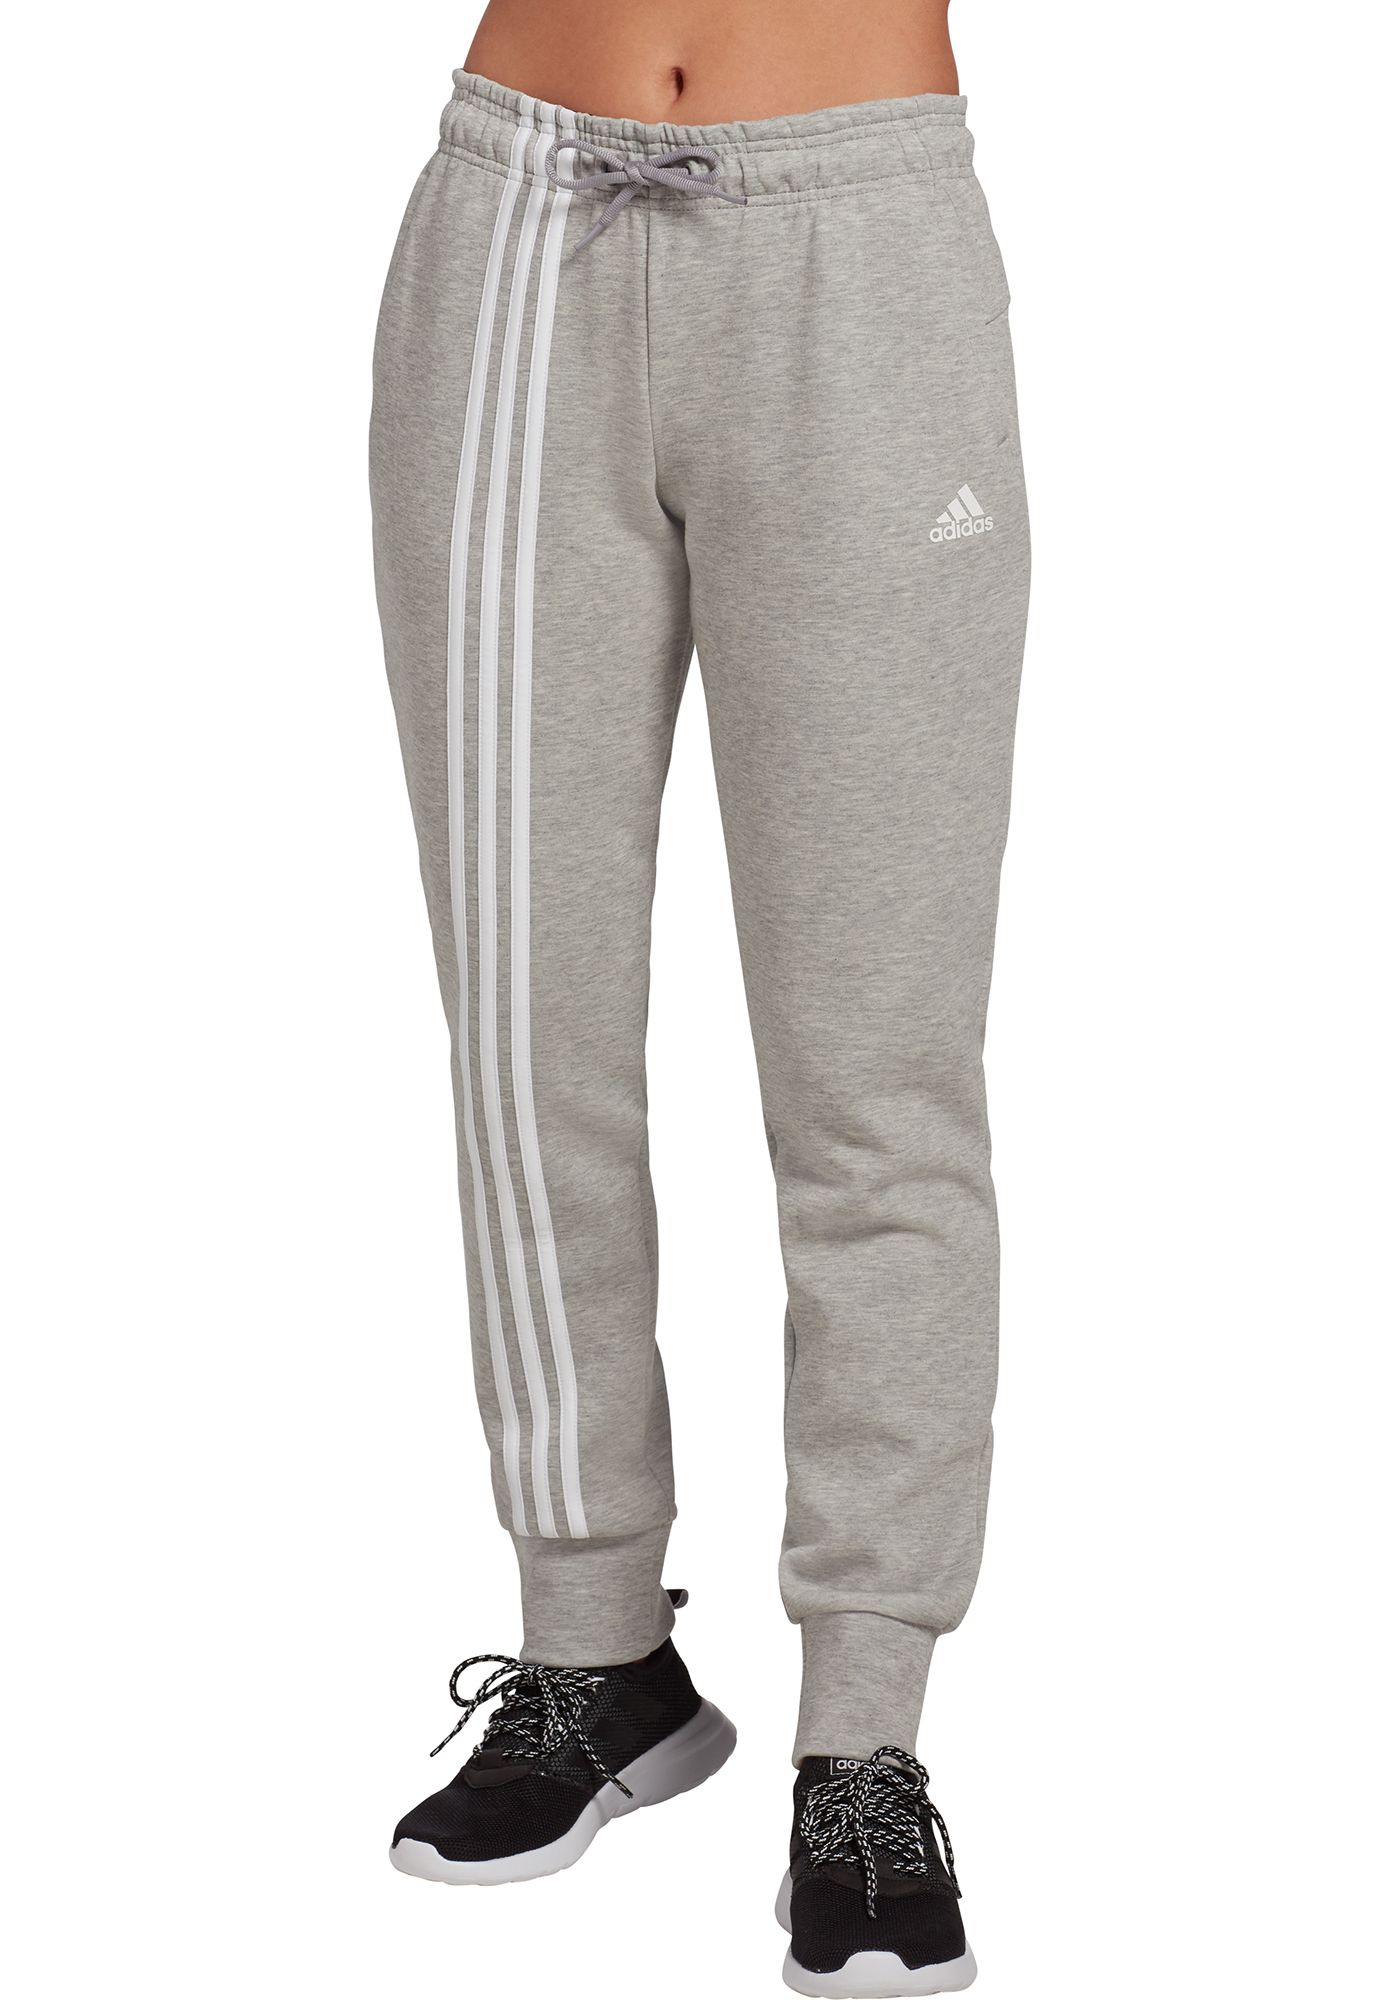 adidas Women's Must Haves 3-Stripes Joggers